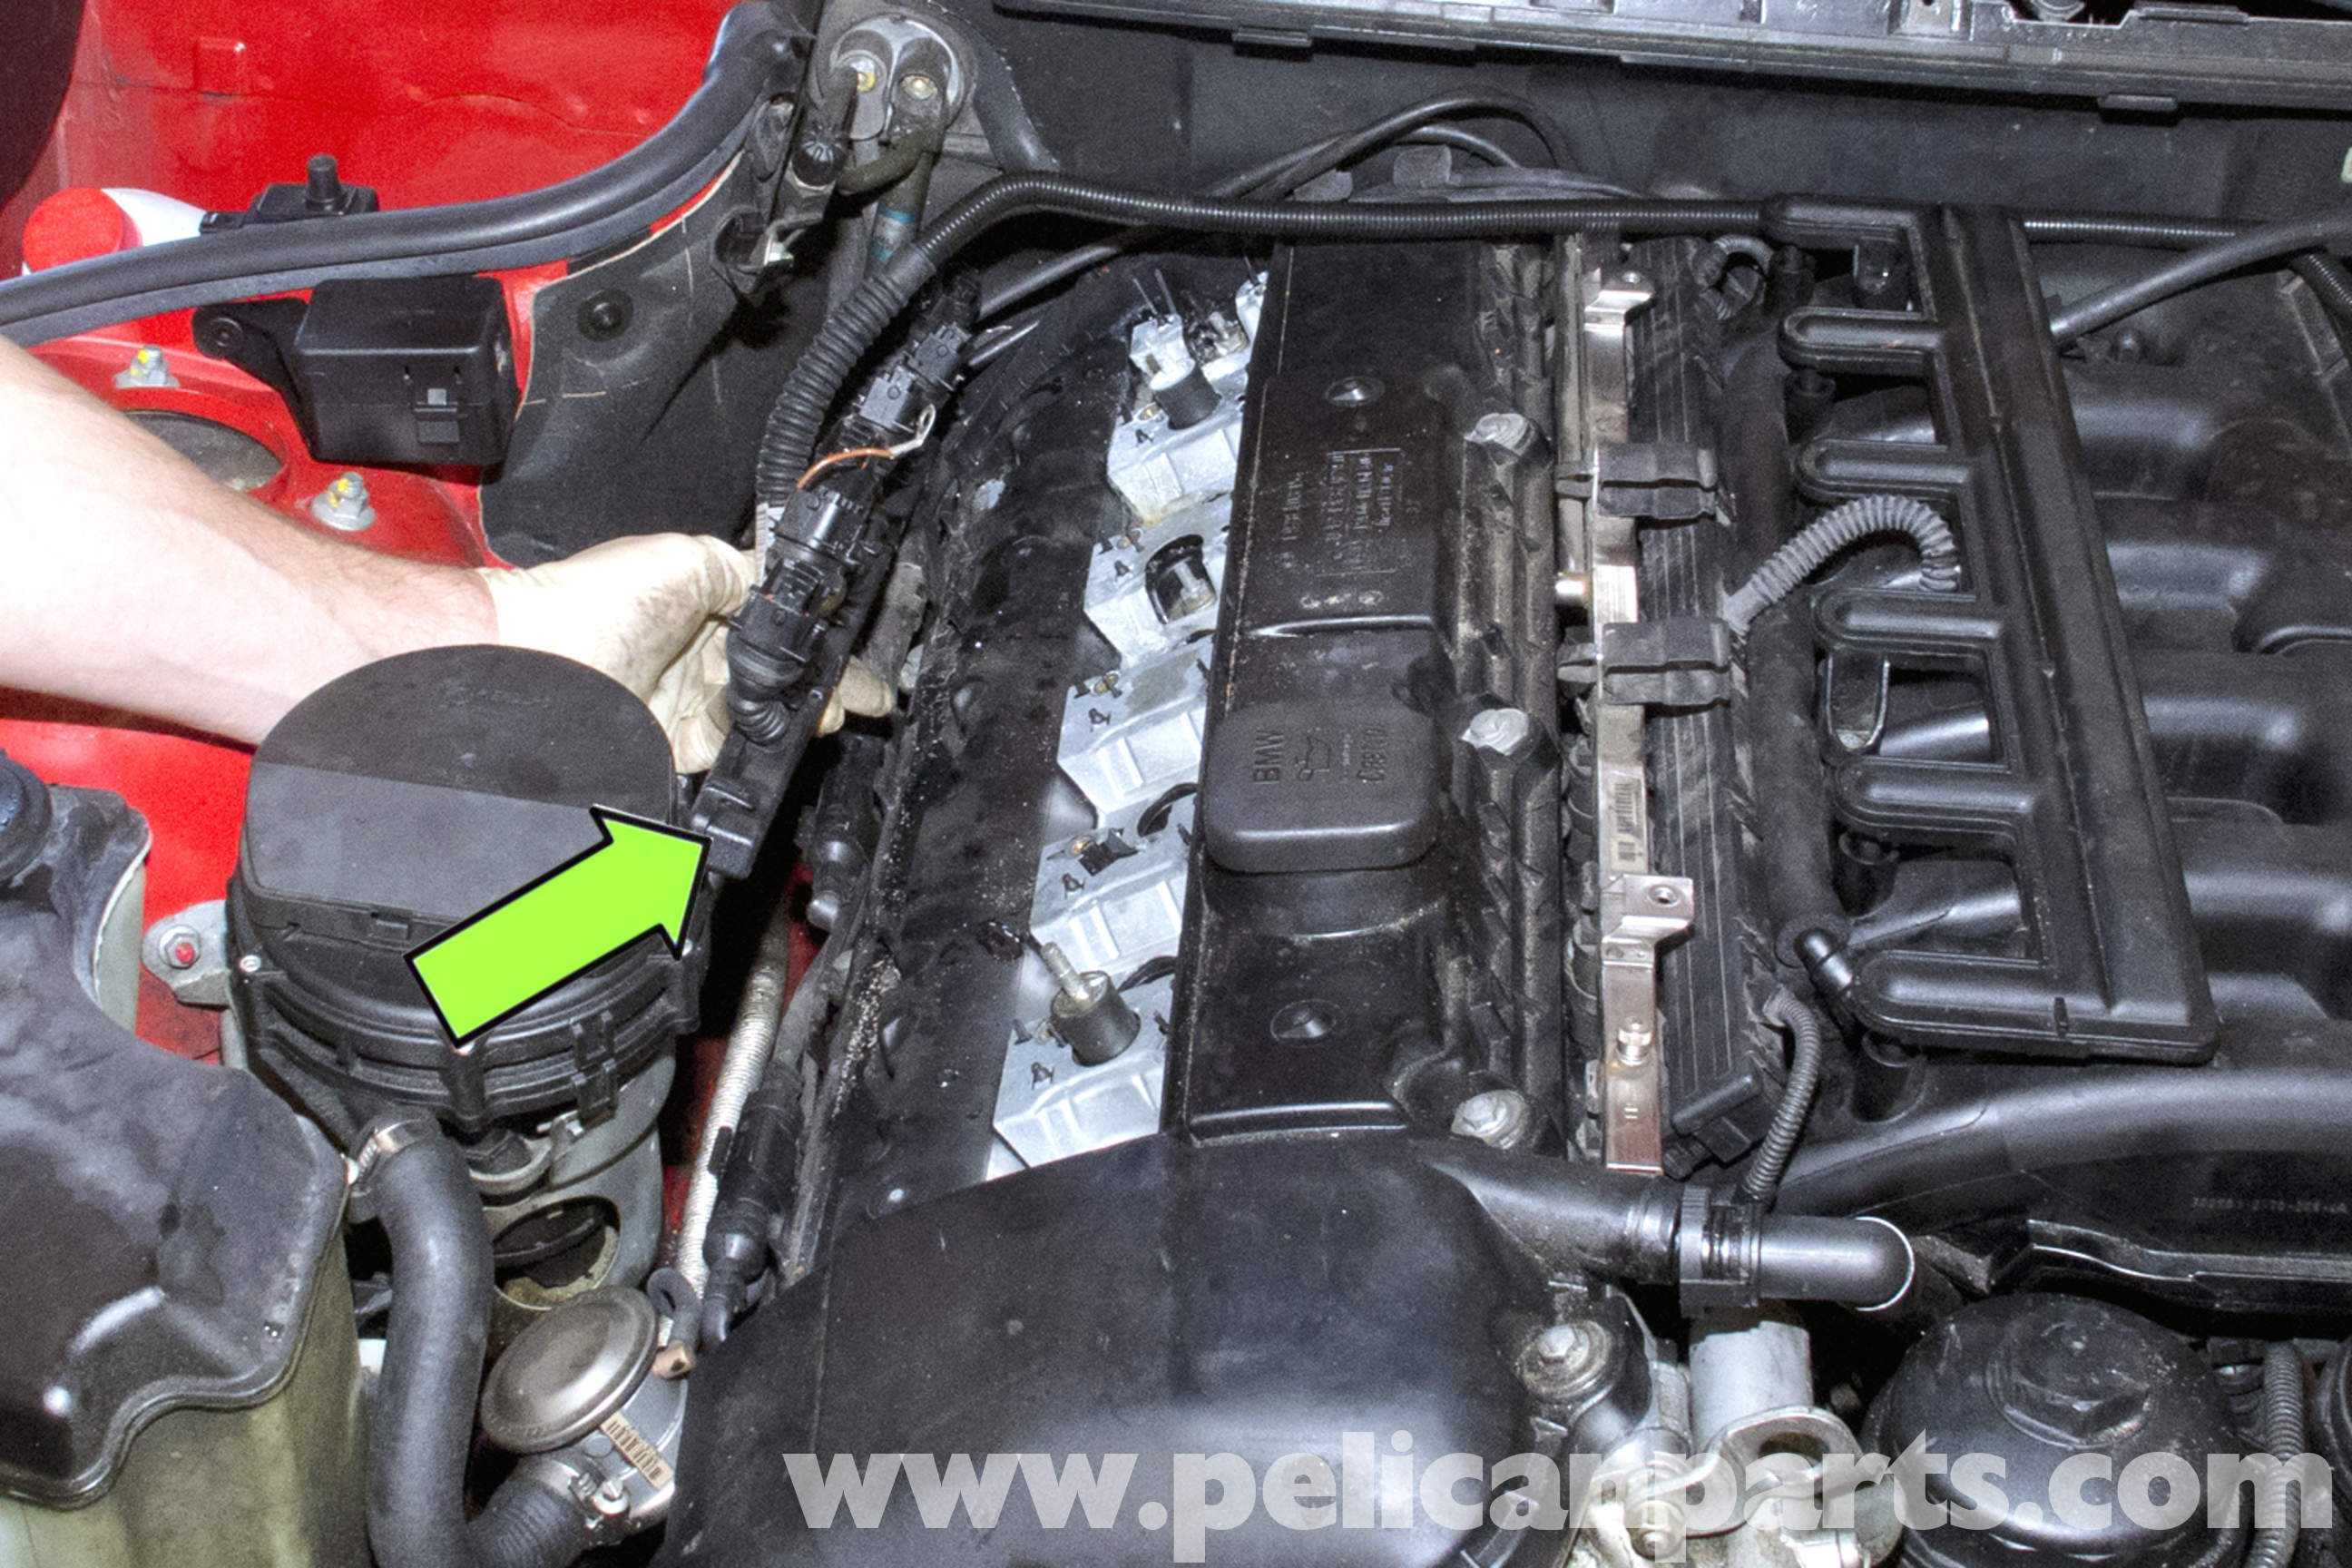 pic02 bmw e39 5 series valve cover gasket removal 1997 2003 525i, 528i  at readyjetset.co